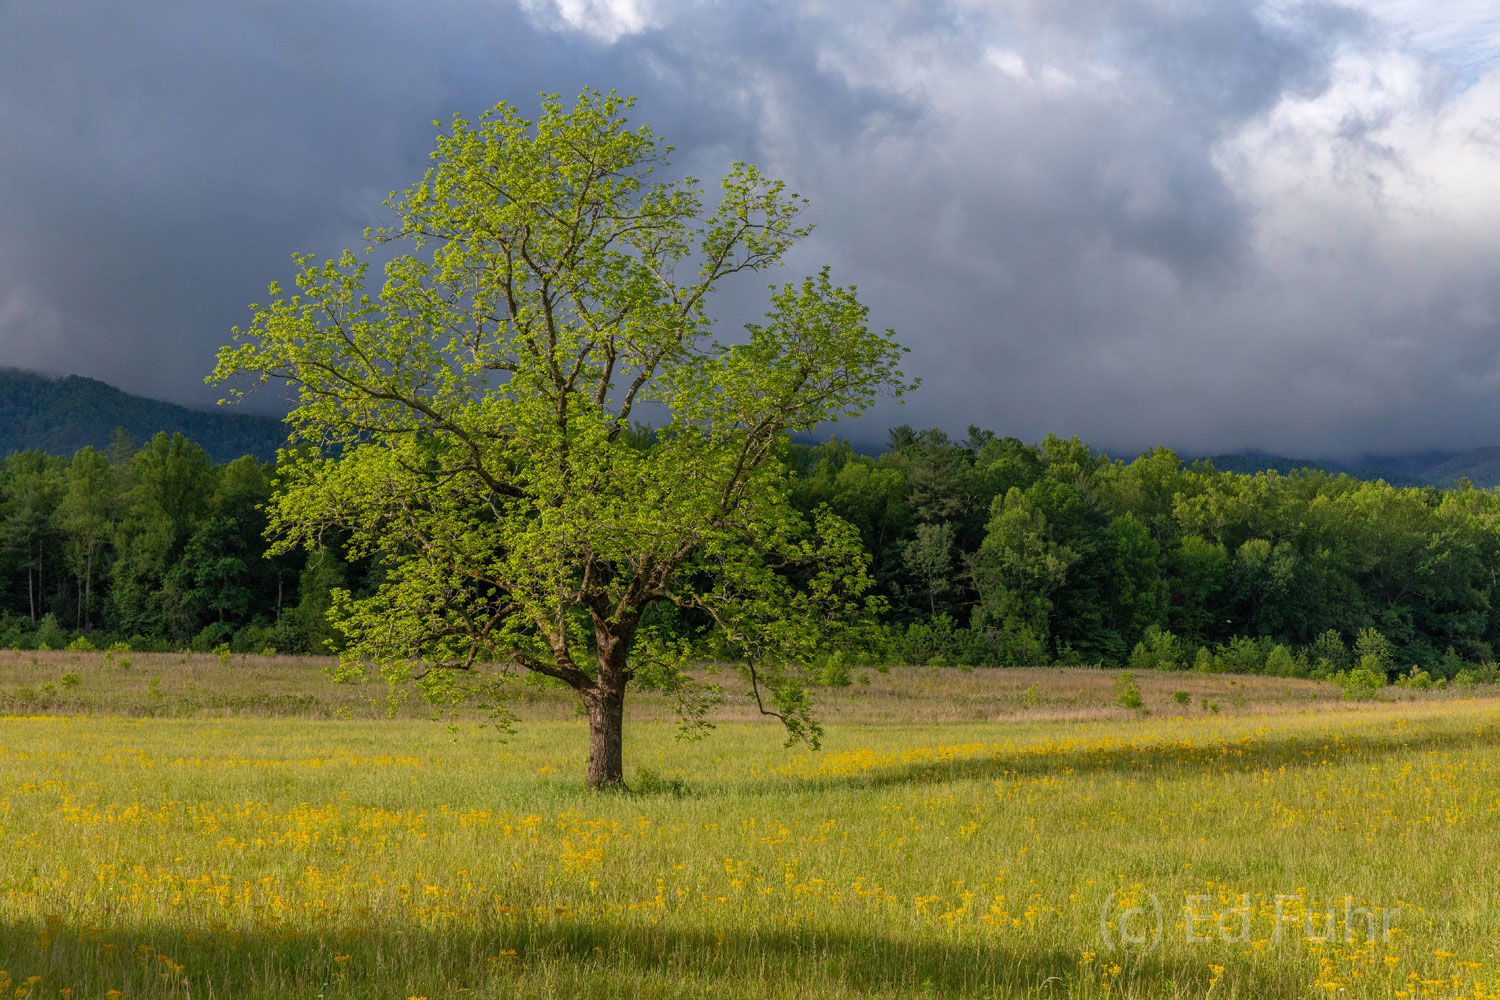 A darkening storm approaches over the mountains surrounding Cades Cove as this solitary tree stands in steady watch.